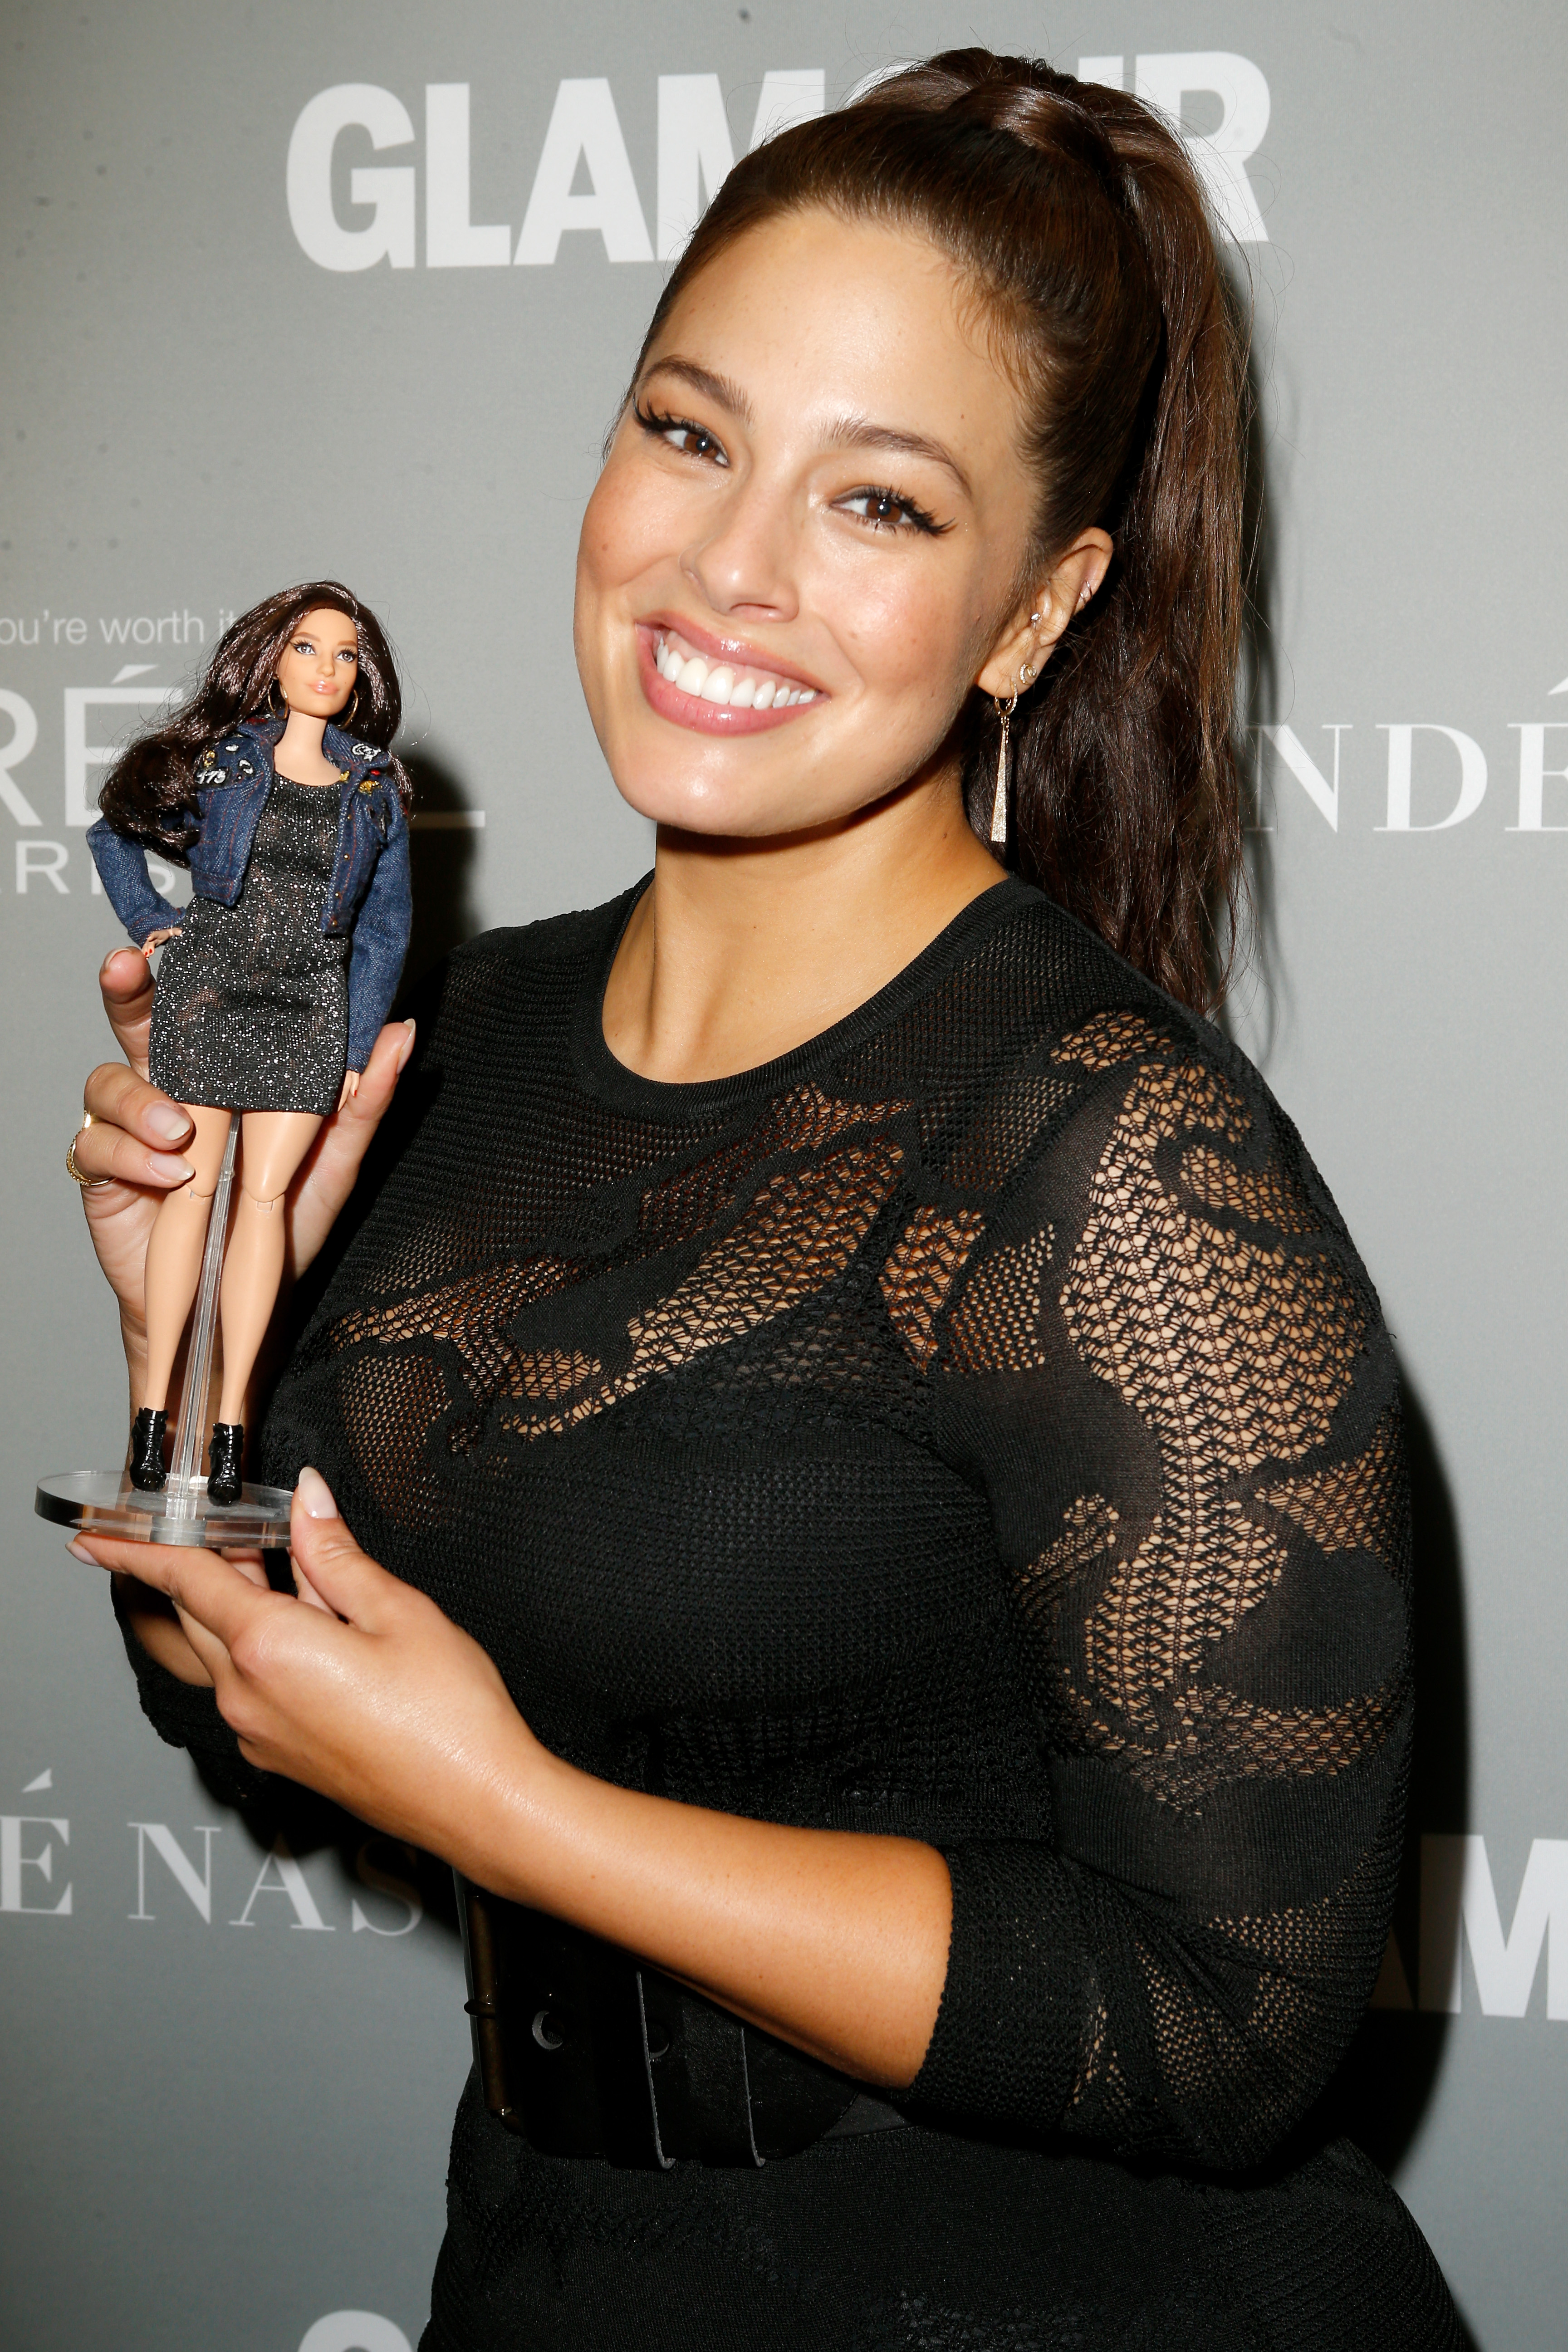 Model Ashley Graham poses with the new Barbie backstage at Glamour Women Of The Year 2016 LIVE Summit in Los Angeles.